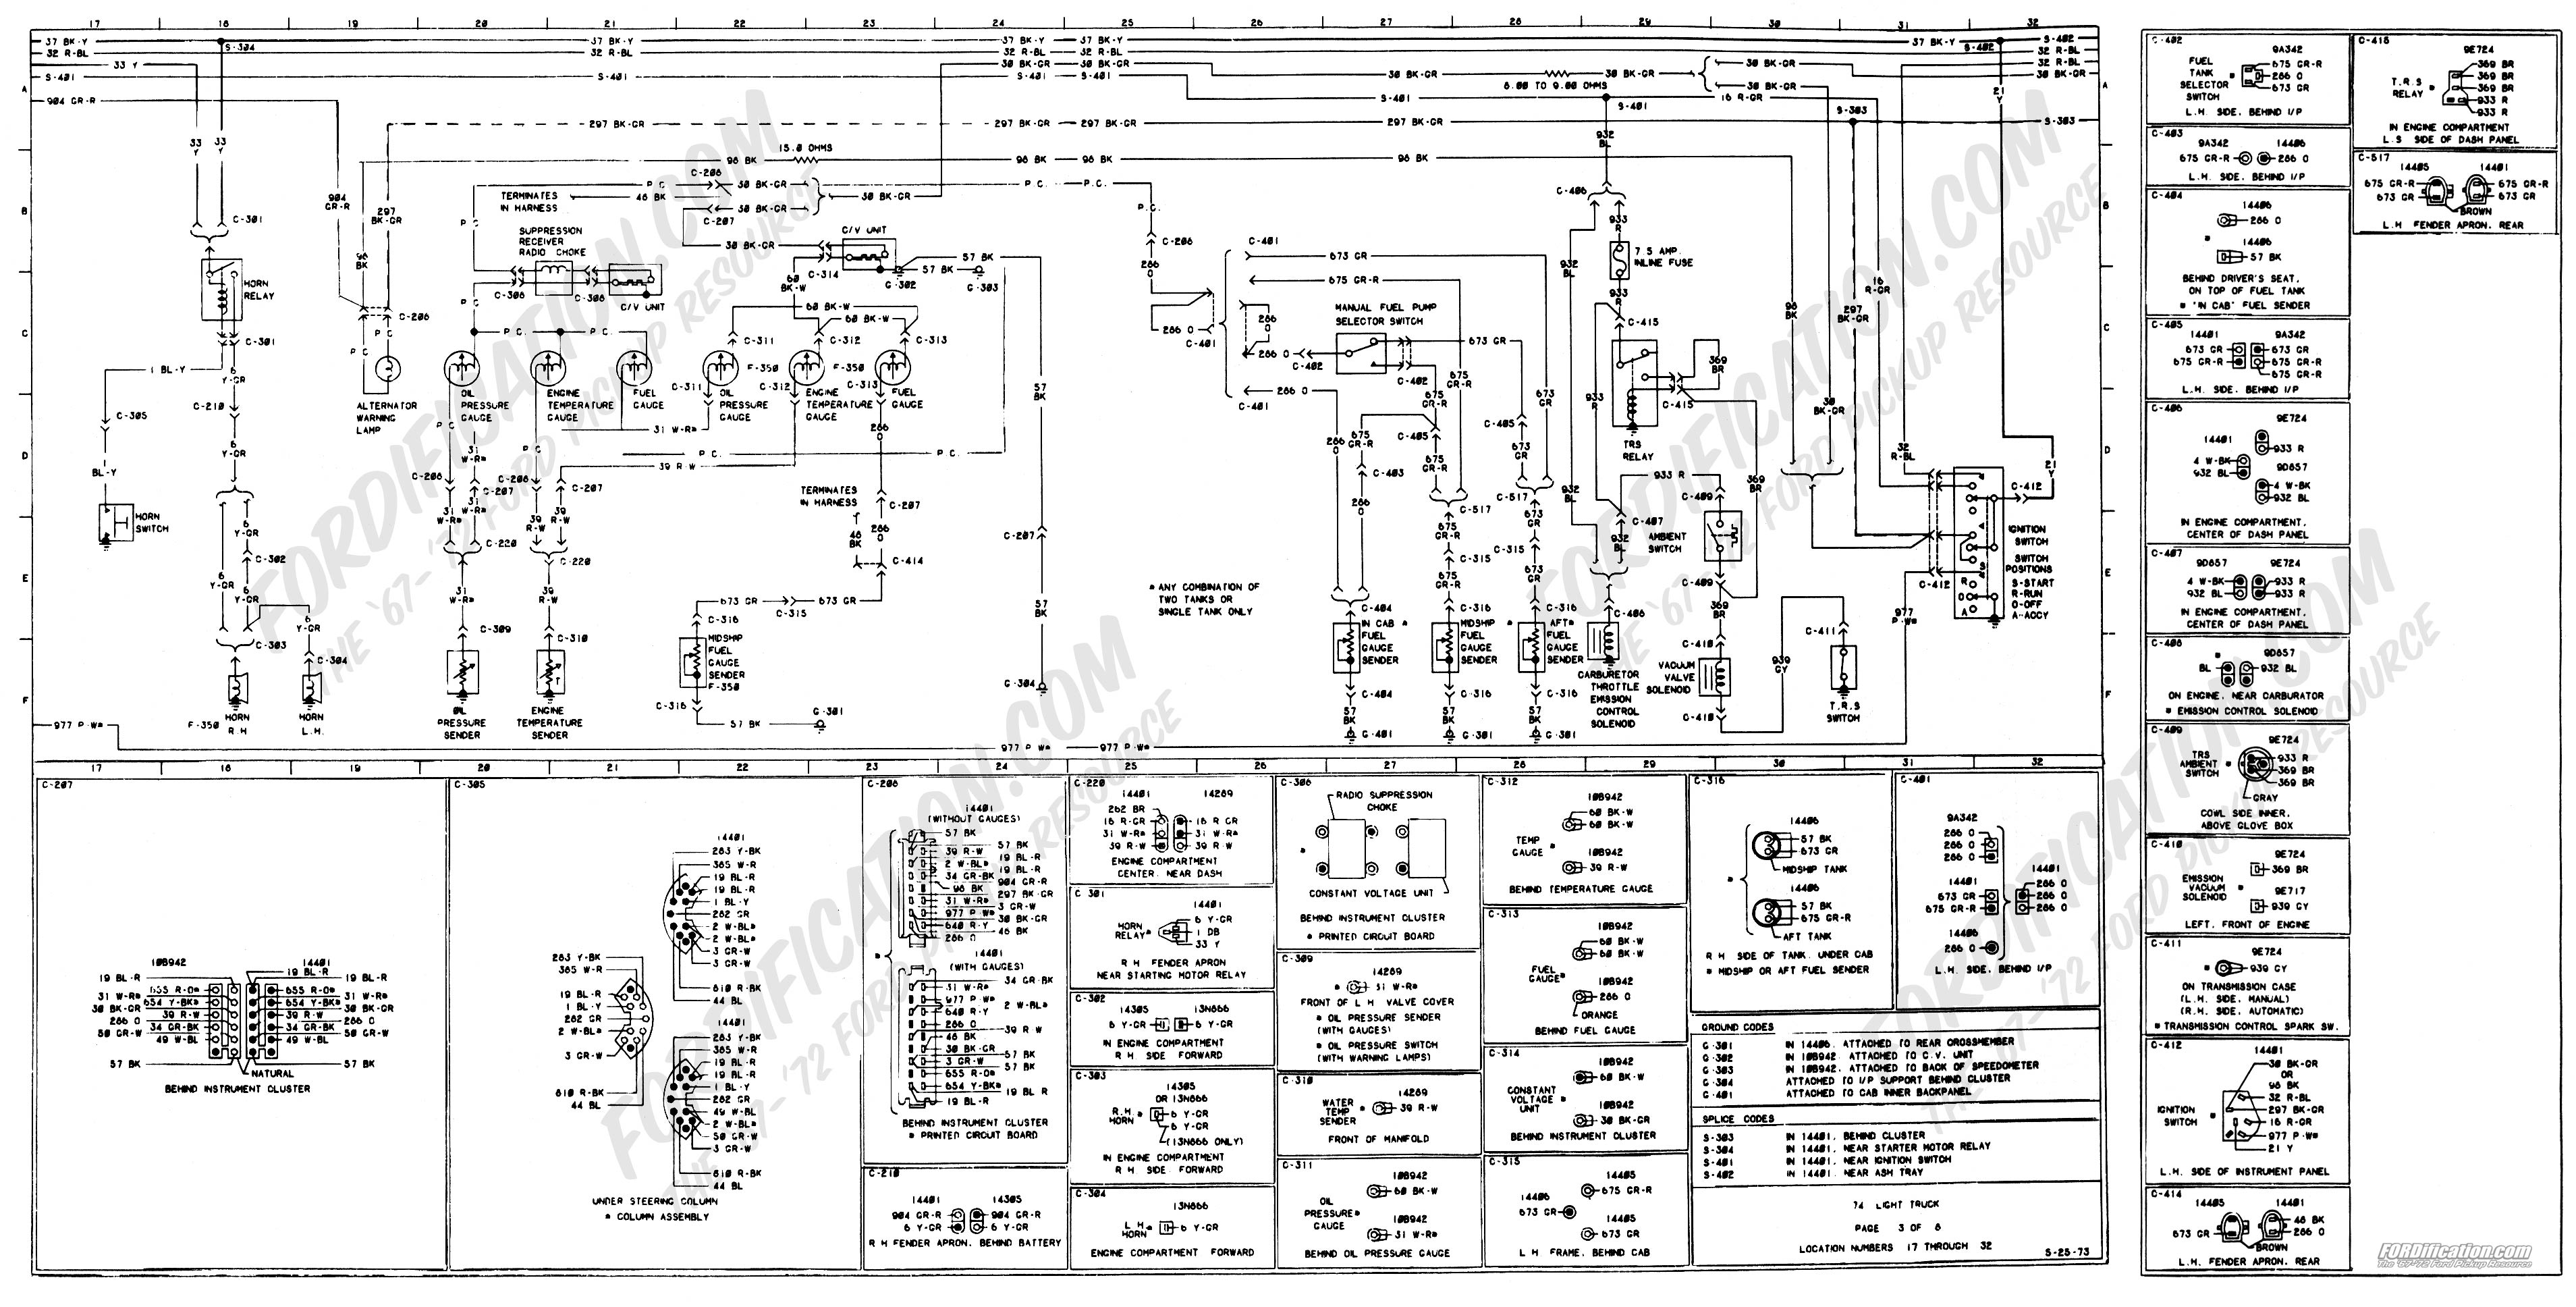 wiring_74master_3of8 1973 1979 ford truck wiring diagrams & schematics fordification net 1971 ford f250 wiring diagram at edmiracle.co